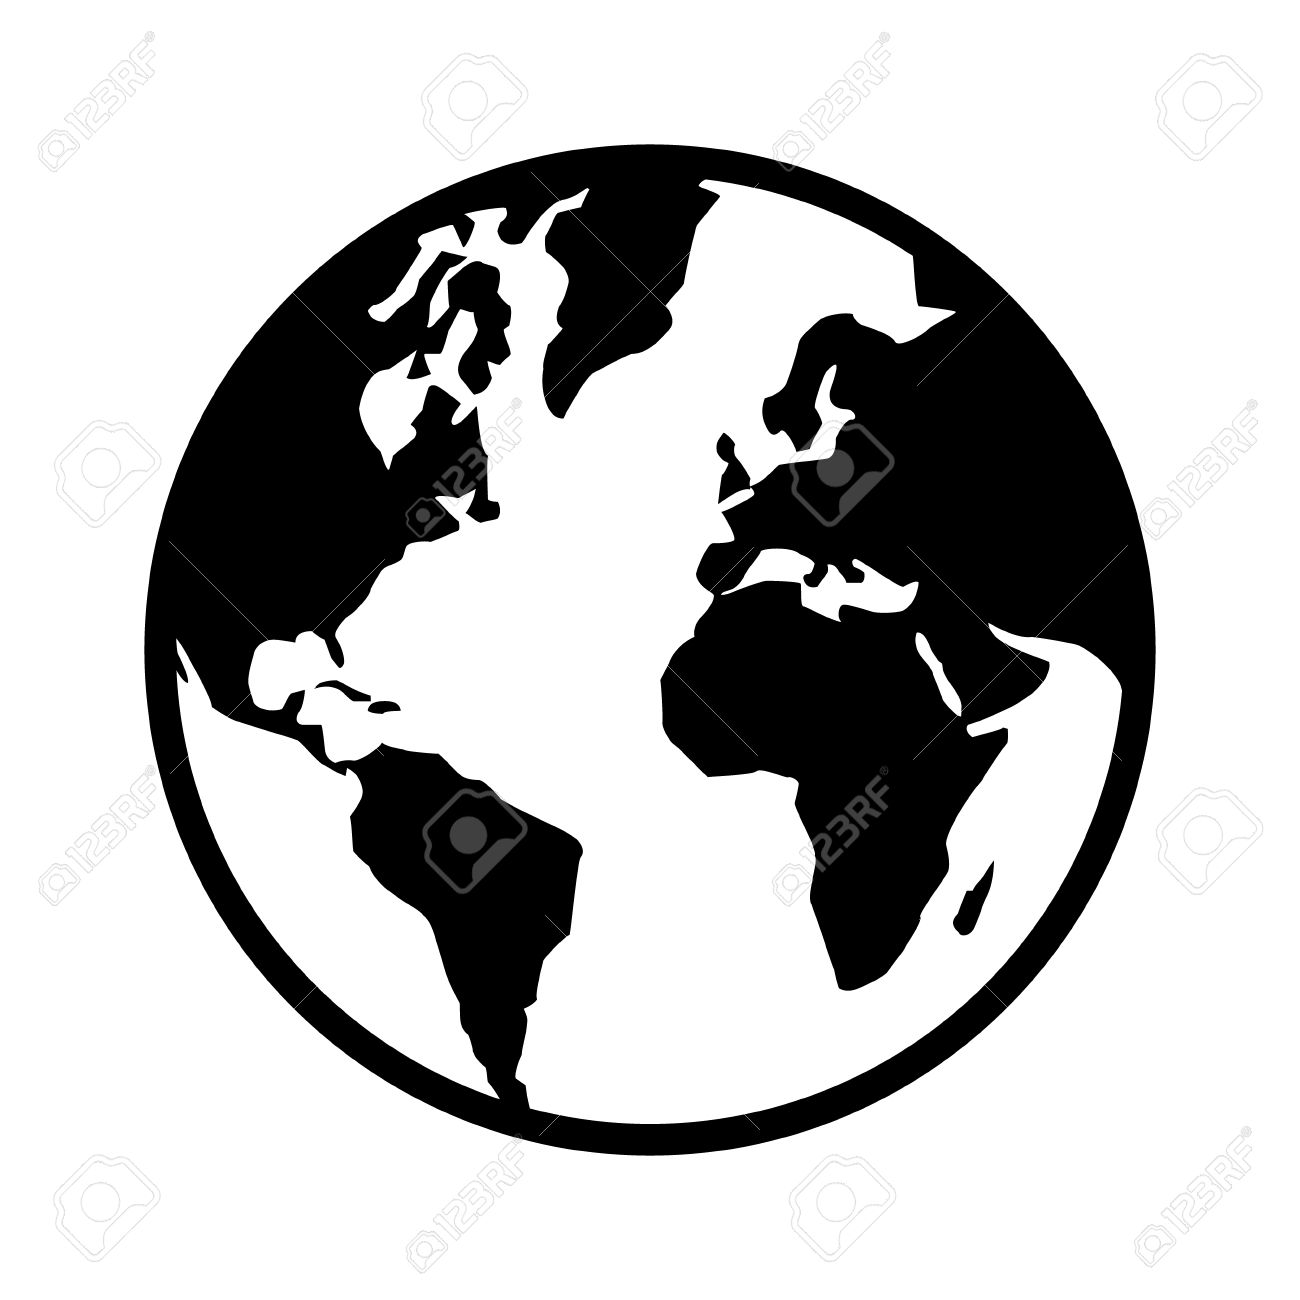 Flat World Map Vector.Flat Globe Vector At Getdrawings Com Free For Personal Use Flat